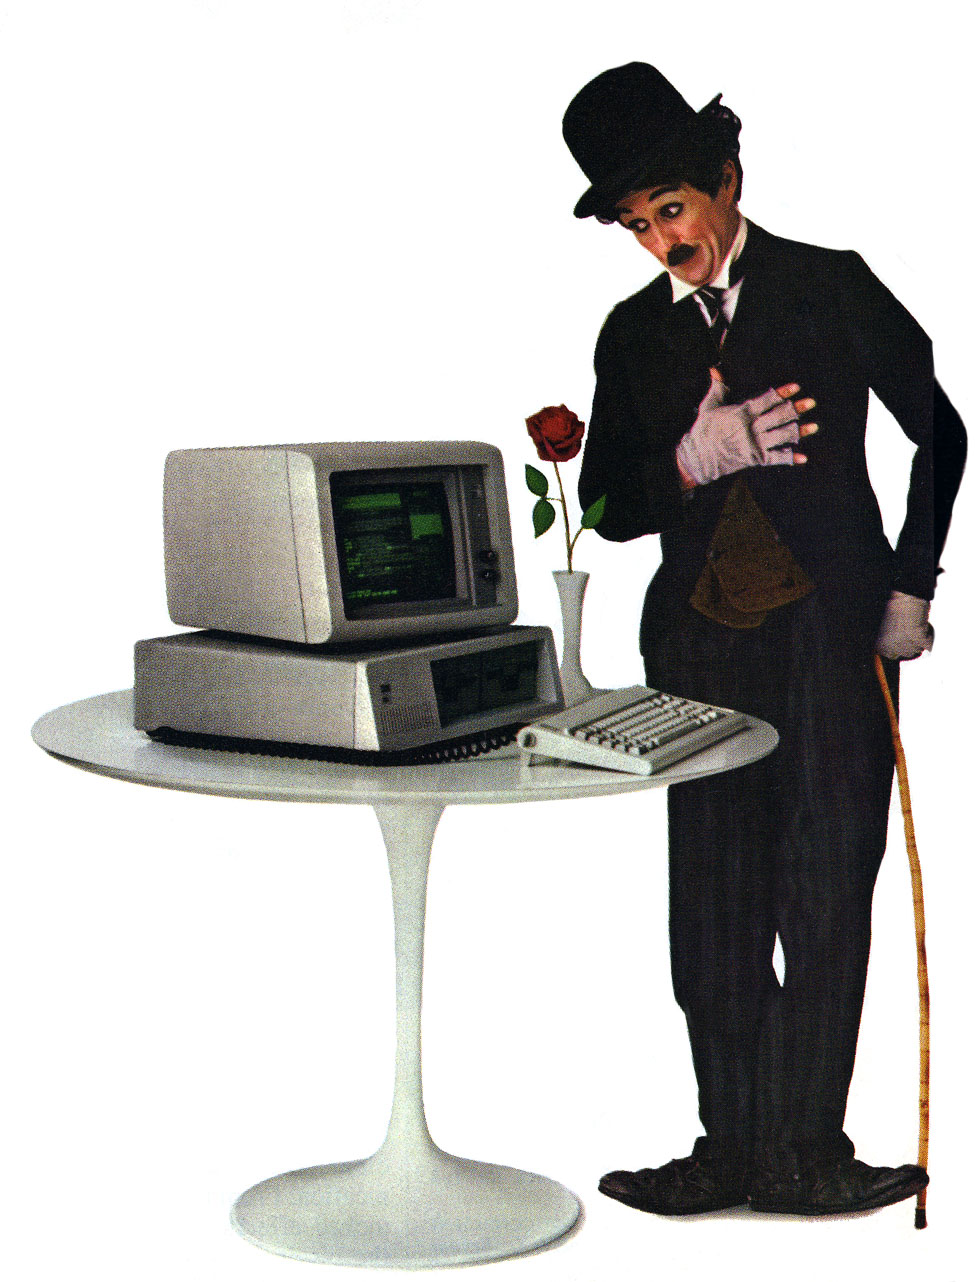 http://www.digibarn.com/stories/ibm-pc-25/images/IBM-PC-PerCon-83.jpg